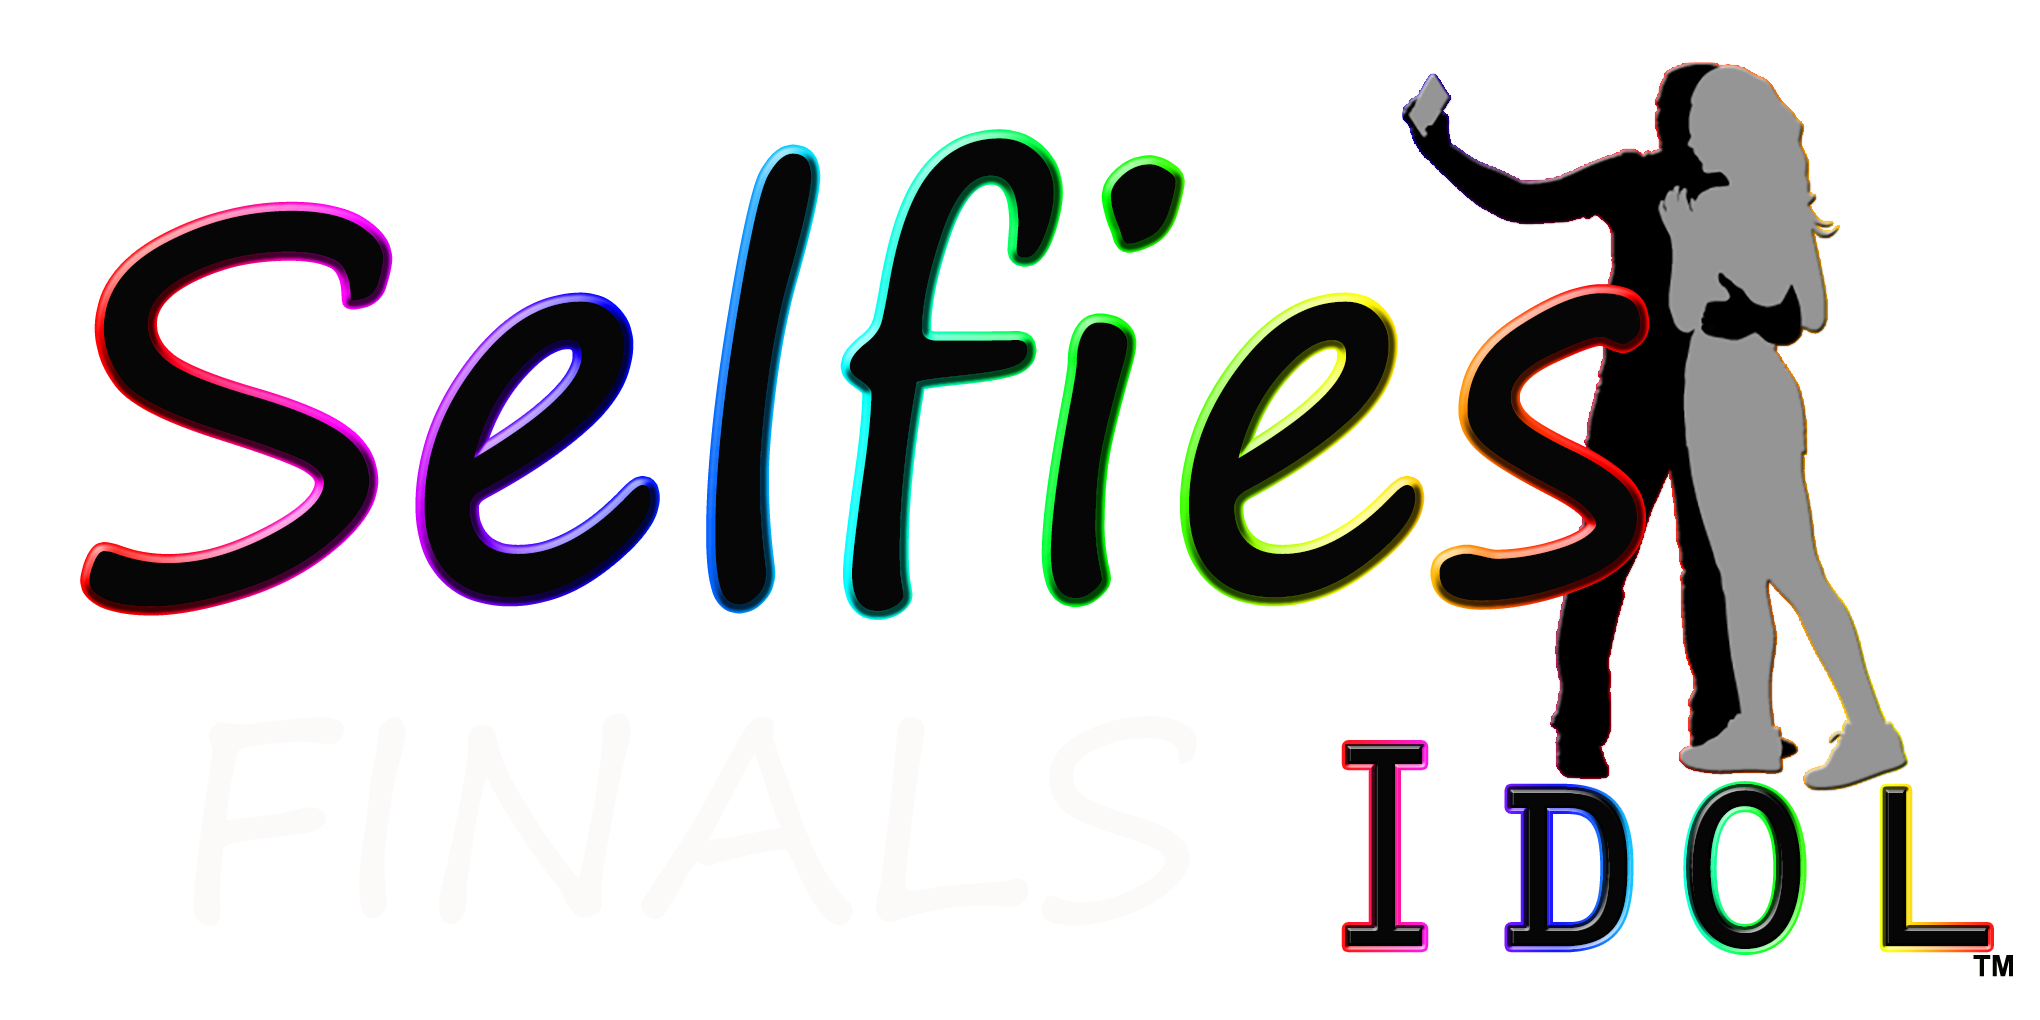 Competition clipart grand prize. Selfies idol contest top